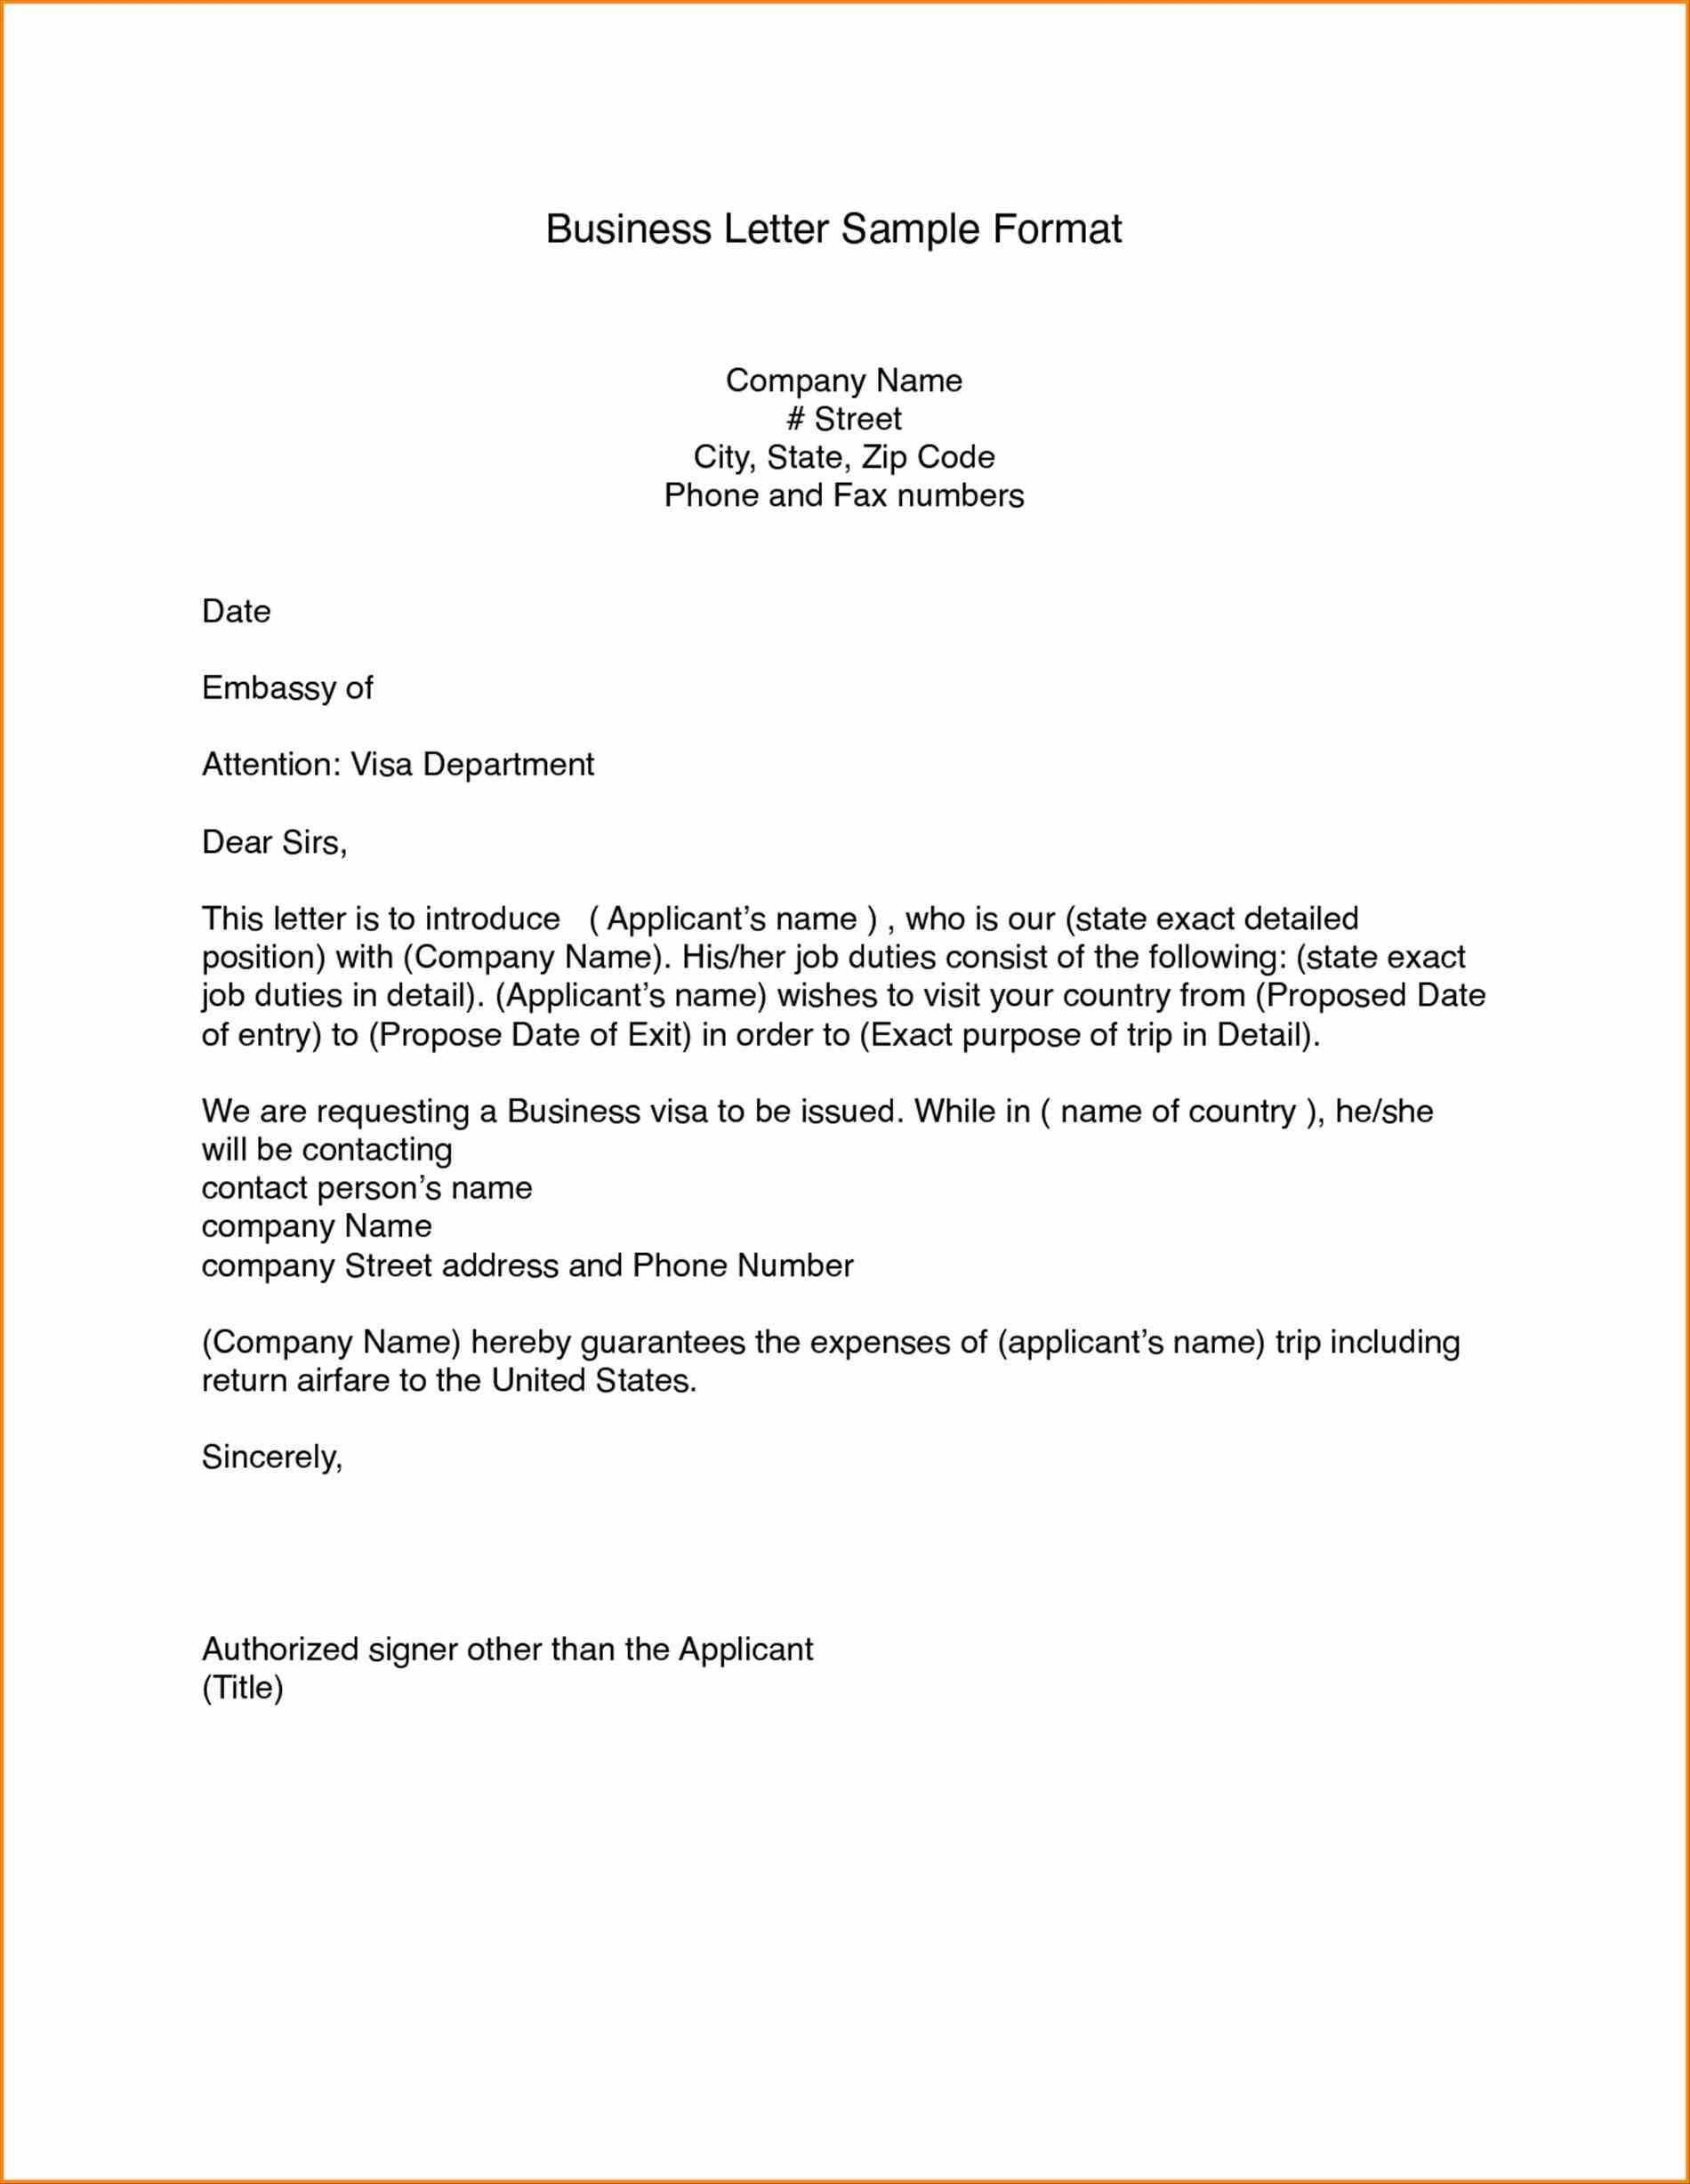 Ms Word Business Letter Template from legaldbol.com